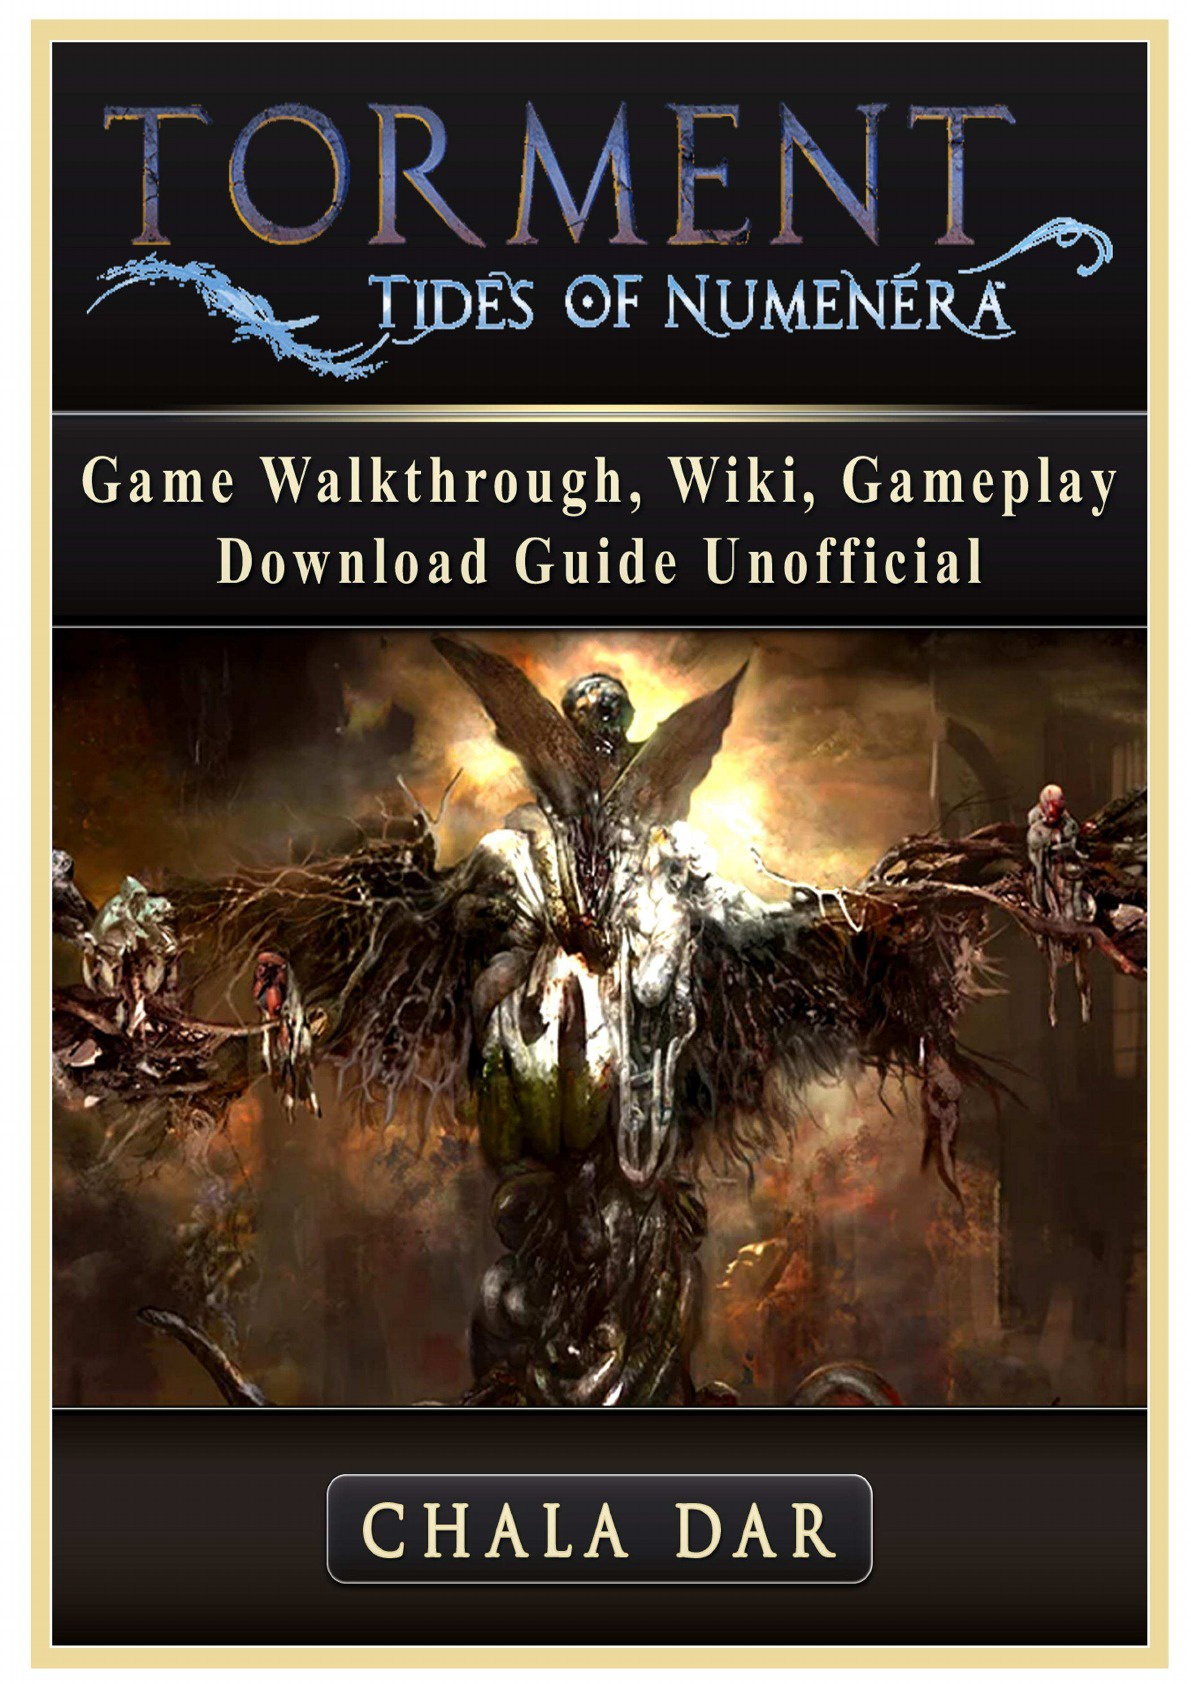 где купить Chala Dar Torment Tides of Numenera Game Walkthrough, Wiki, Gameplay, Download Guide Unofficial по лучшей цене